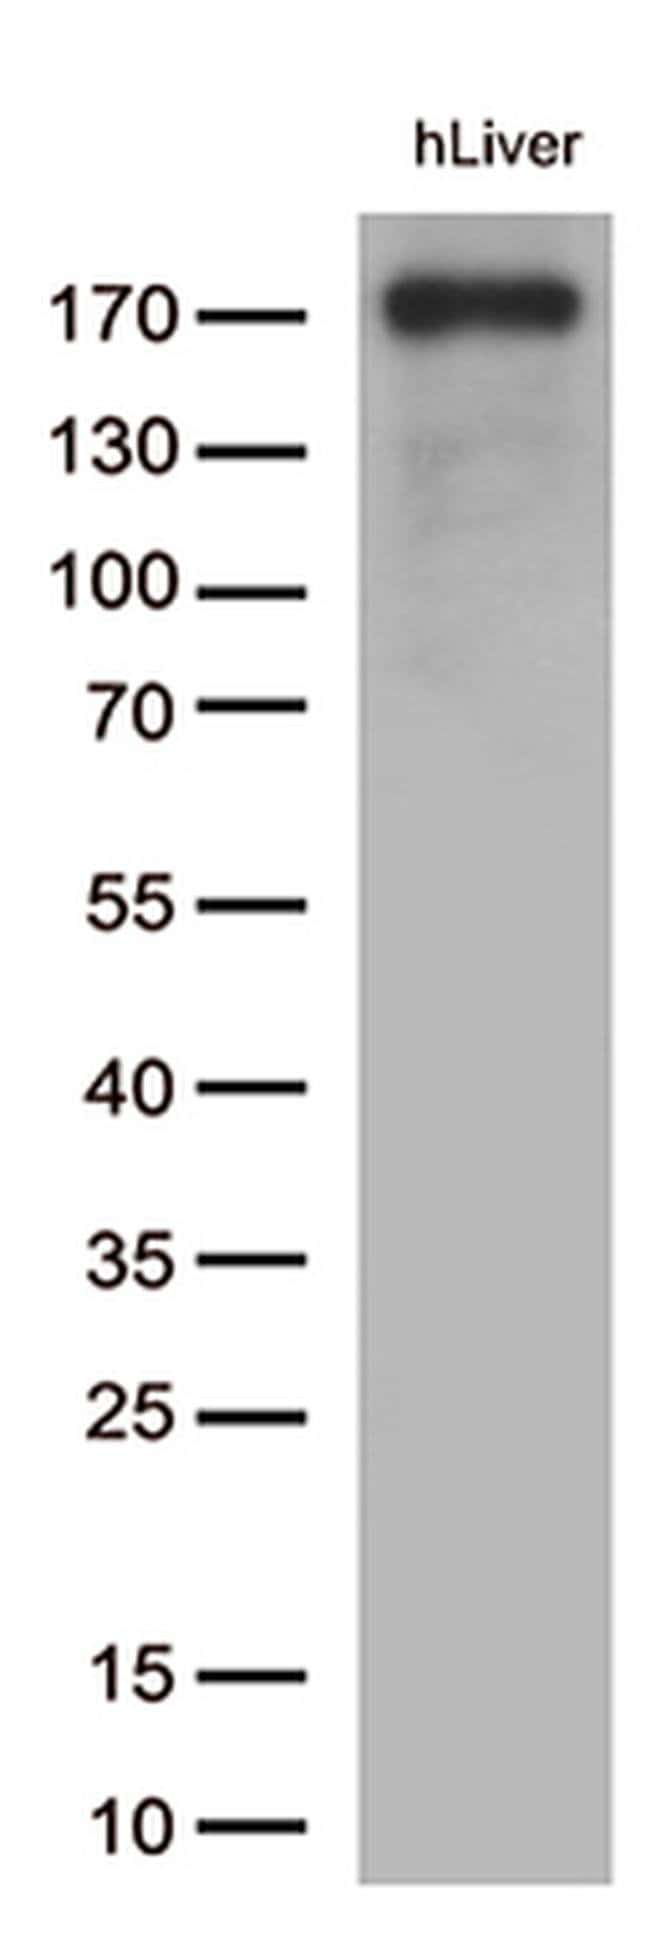 CD163 Mouse anti-Human, Clone: OTI2B12, liquid, TrueMAB  100 µL; Unconjugated